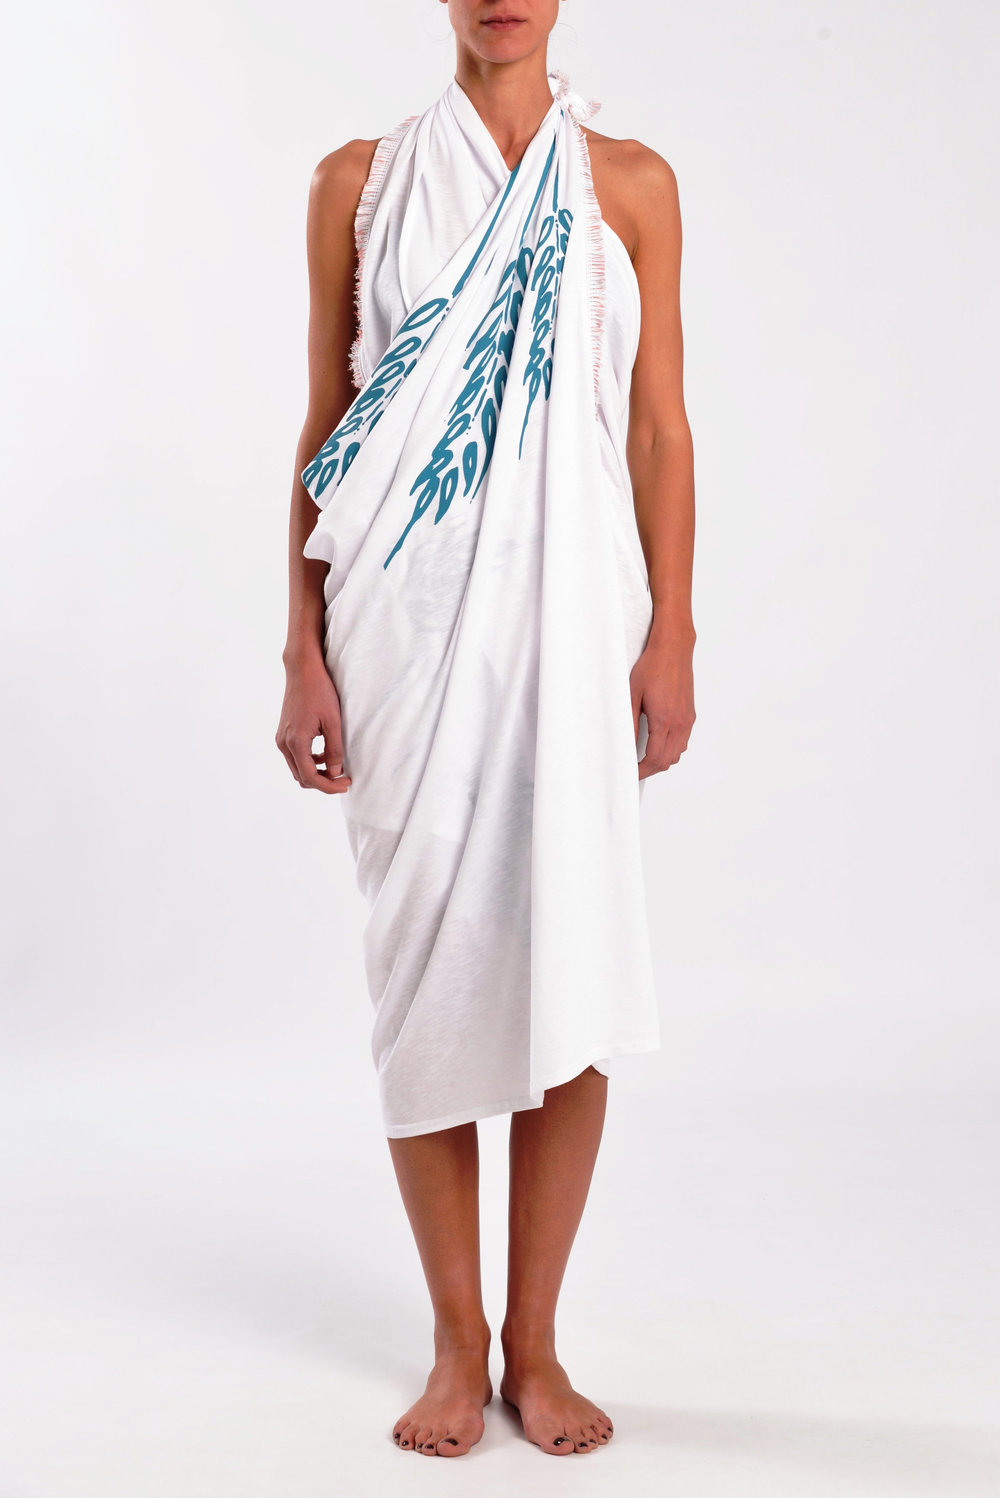 demetra-blue-on-white-cotton-with-trimming-wraped-as-dress-front-1.JPG